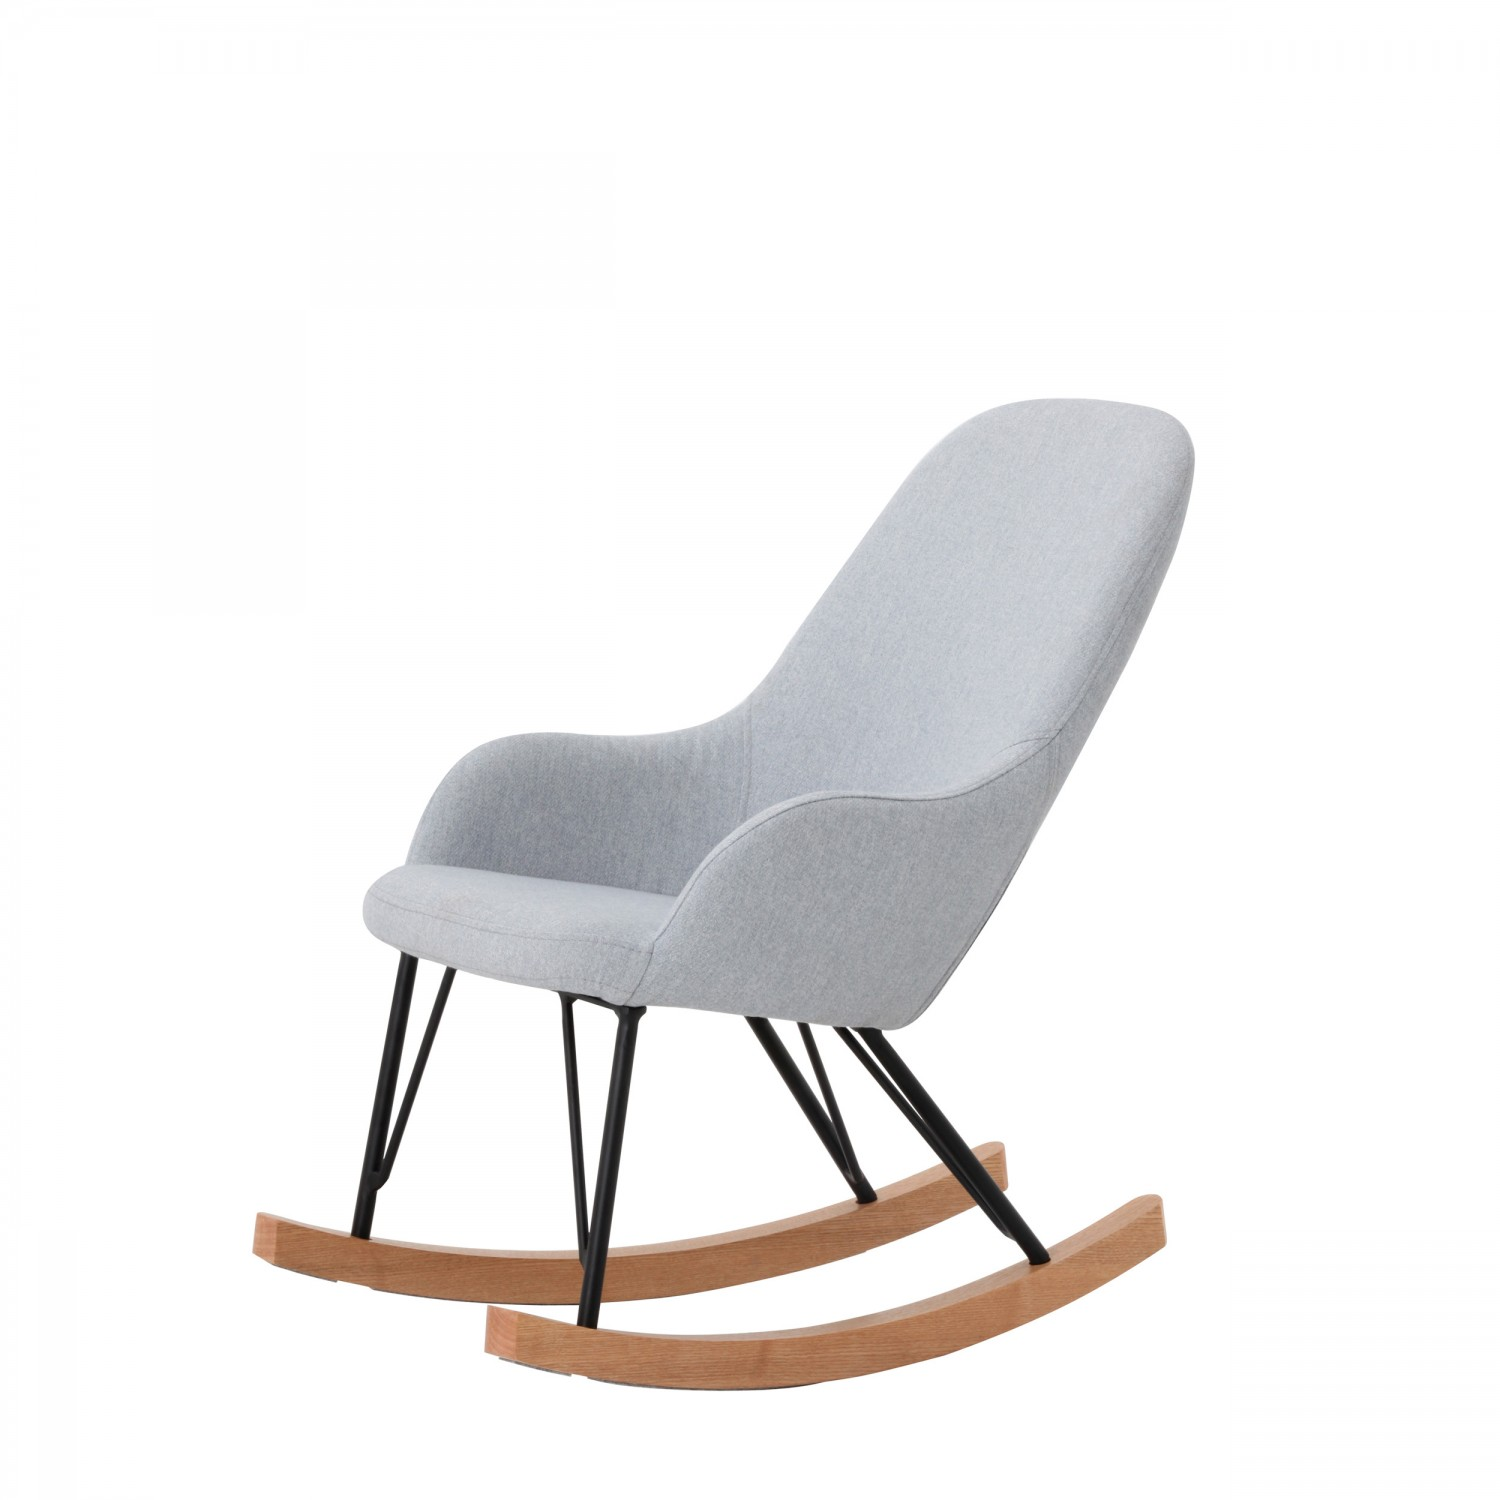 rocking chair enfant bleu clair koya design. Black Bedroom Furniture Sets. Home Design Ideas